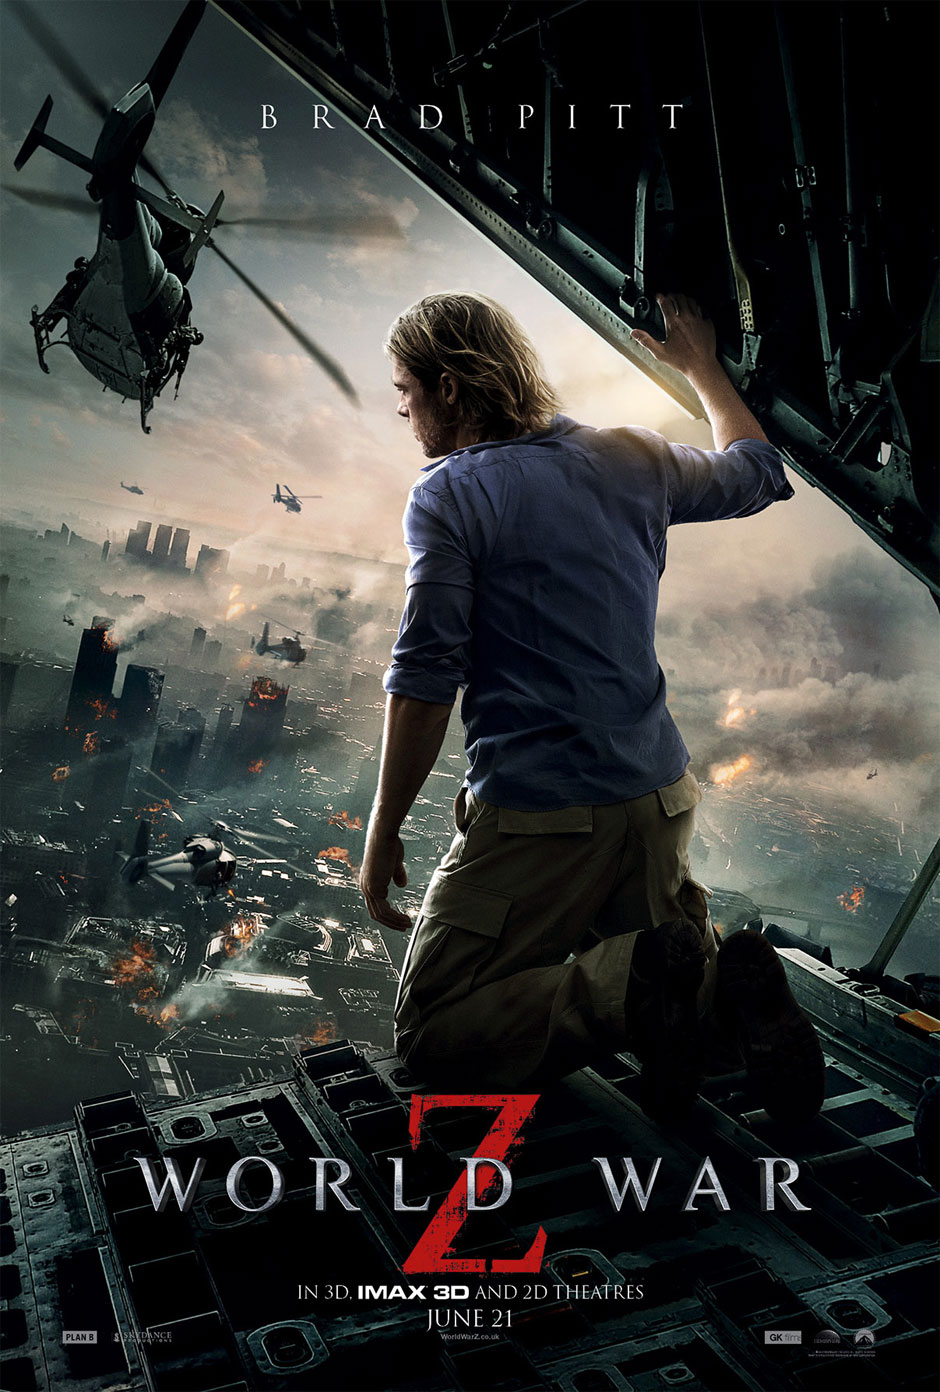 World-War-Z-2013-Movie-Poster2.jpg